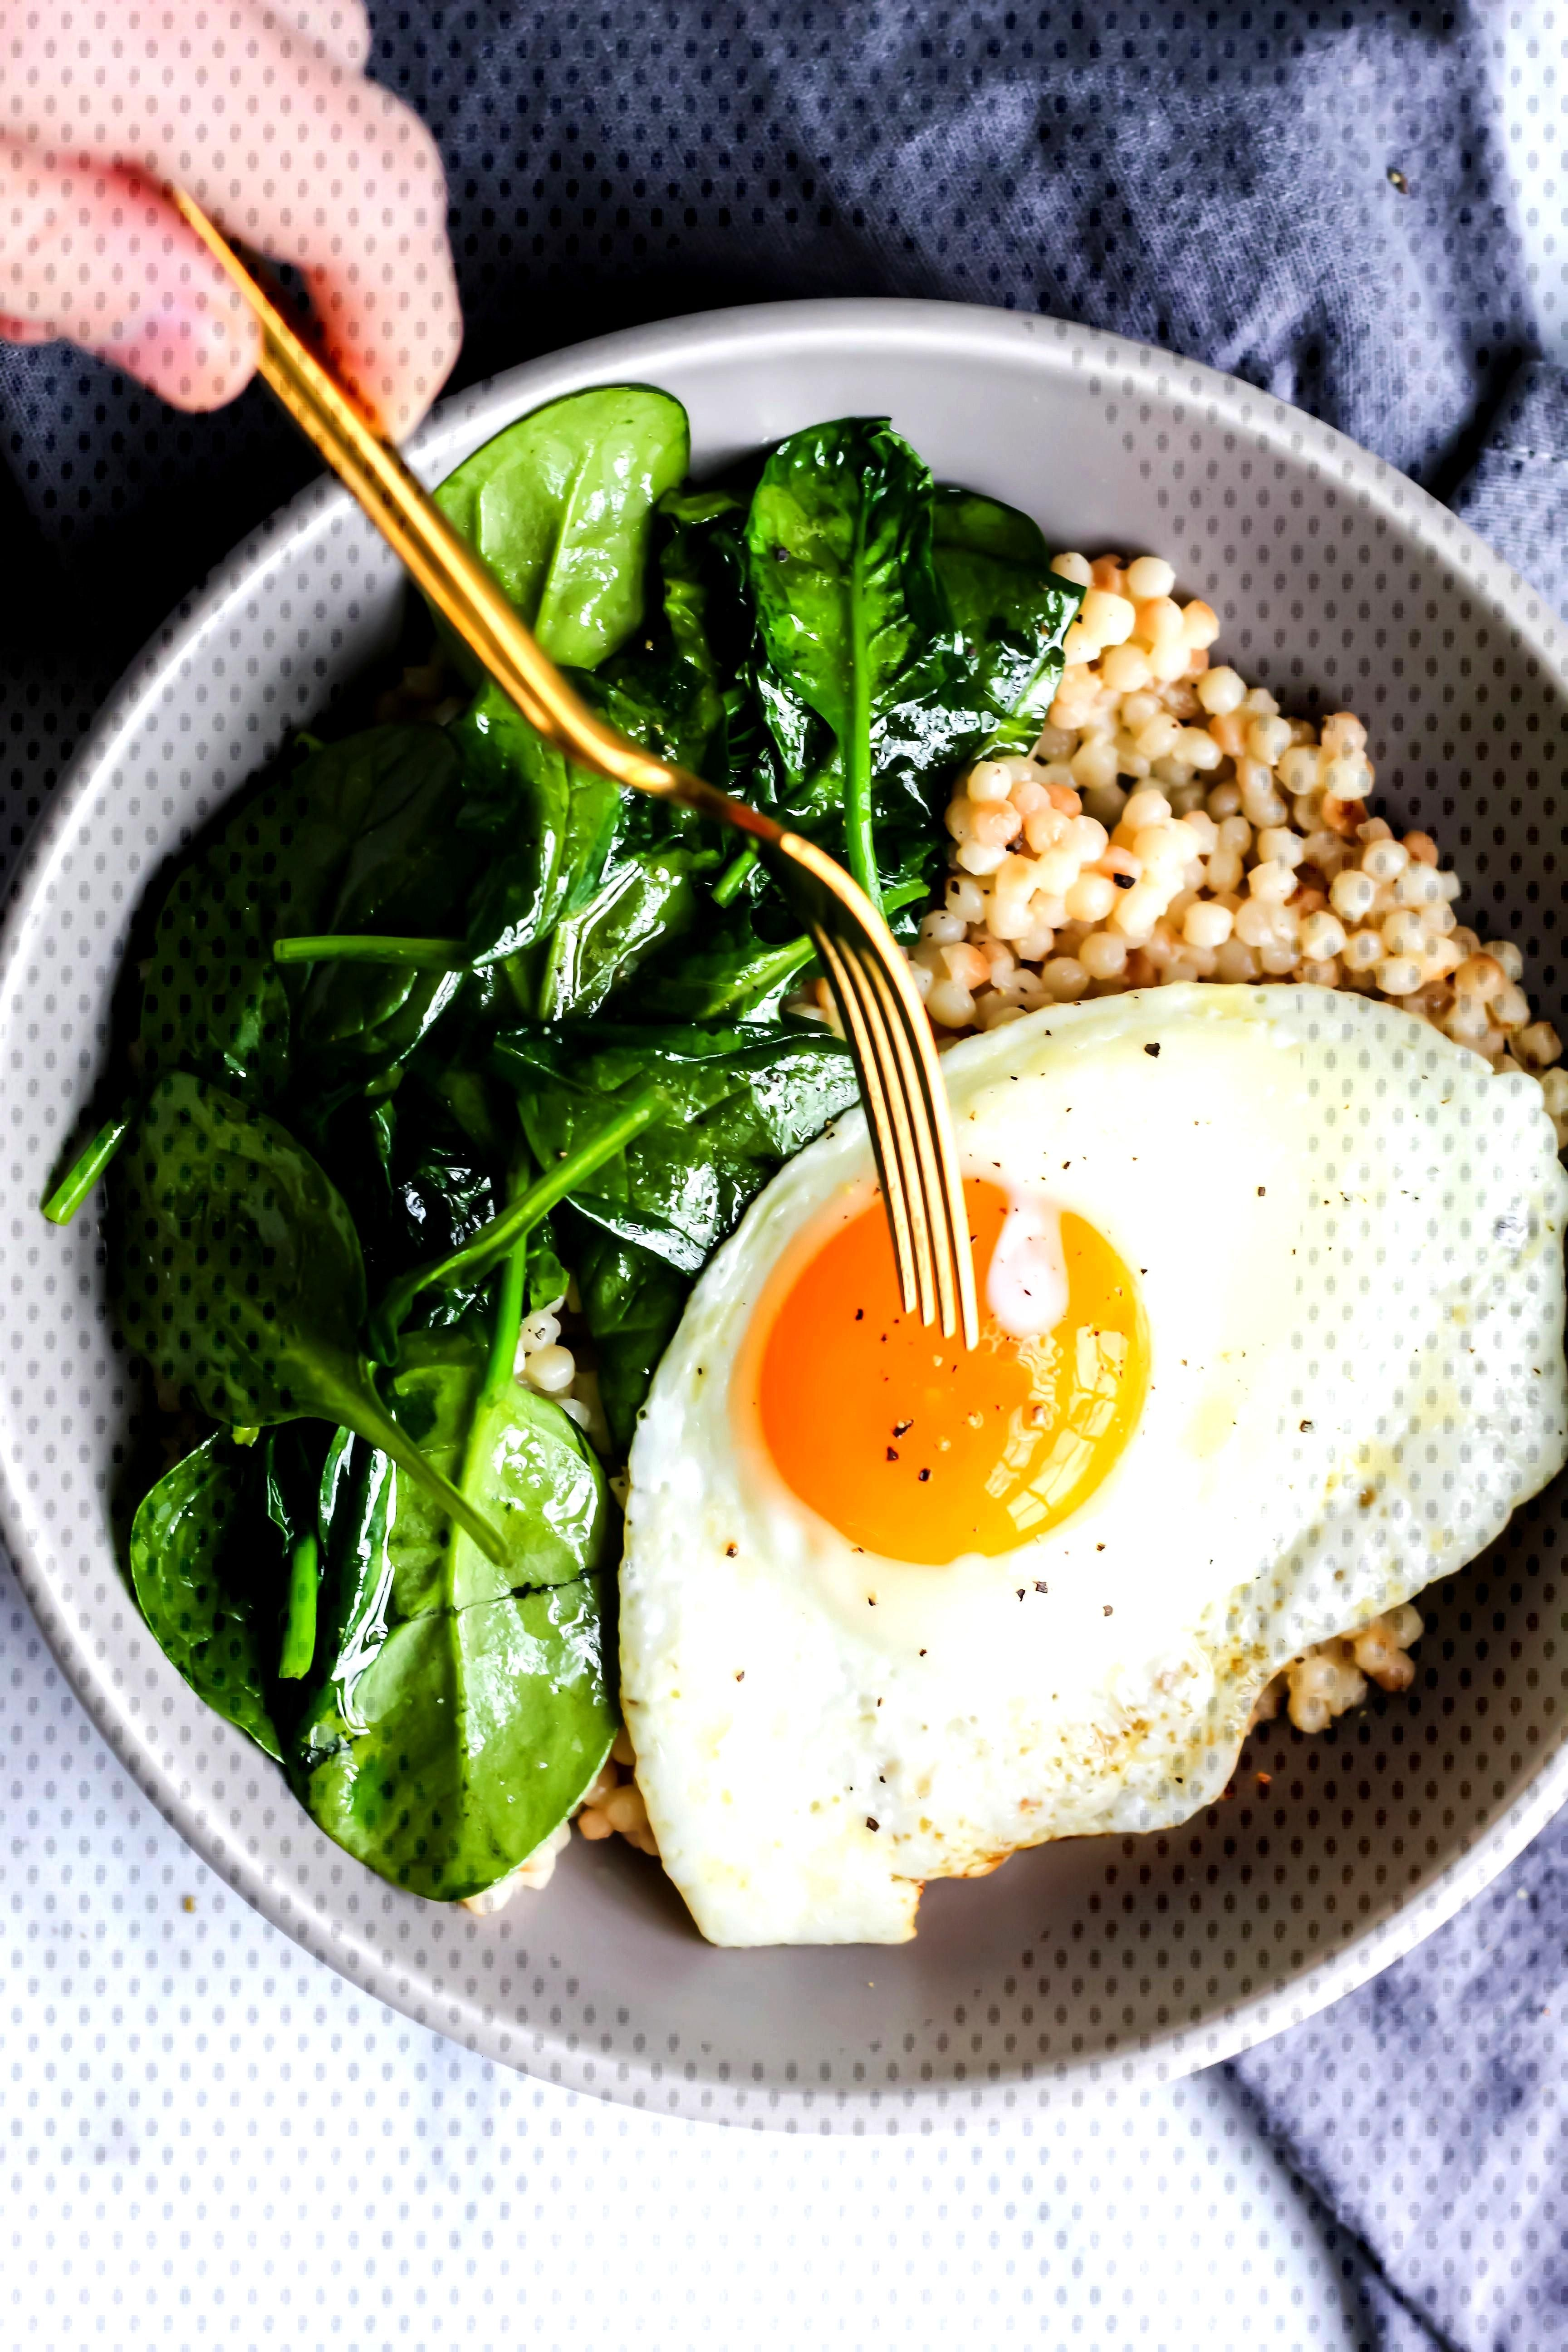 Roasted Garlic Couscous Breakfast Bowl This Roasted Garlic Couscous Breakfast Bowl is loaded with